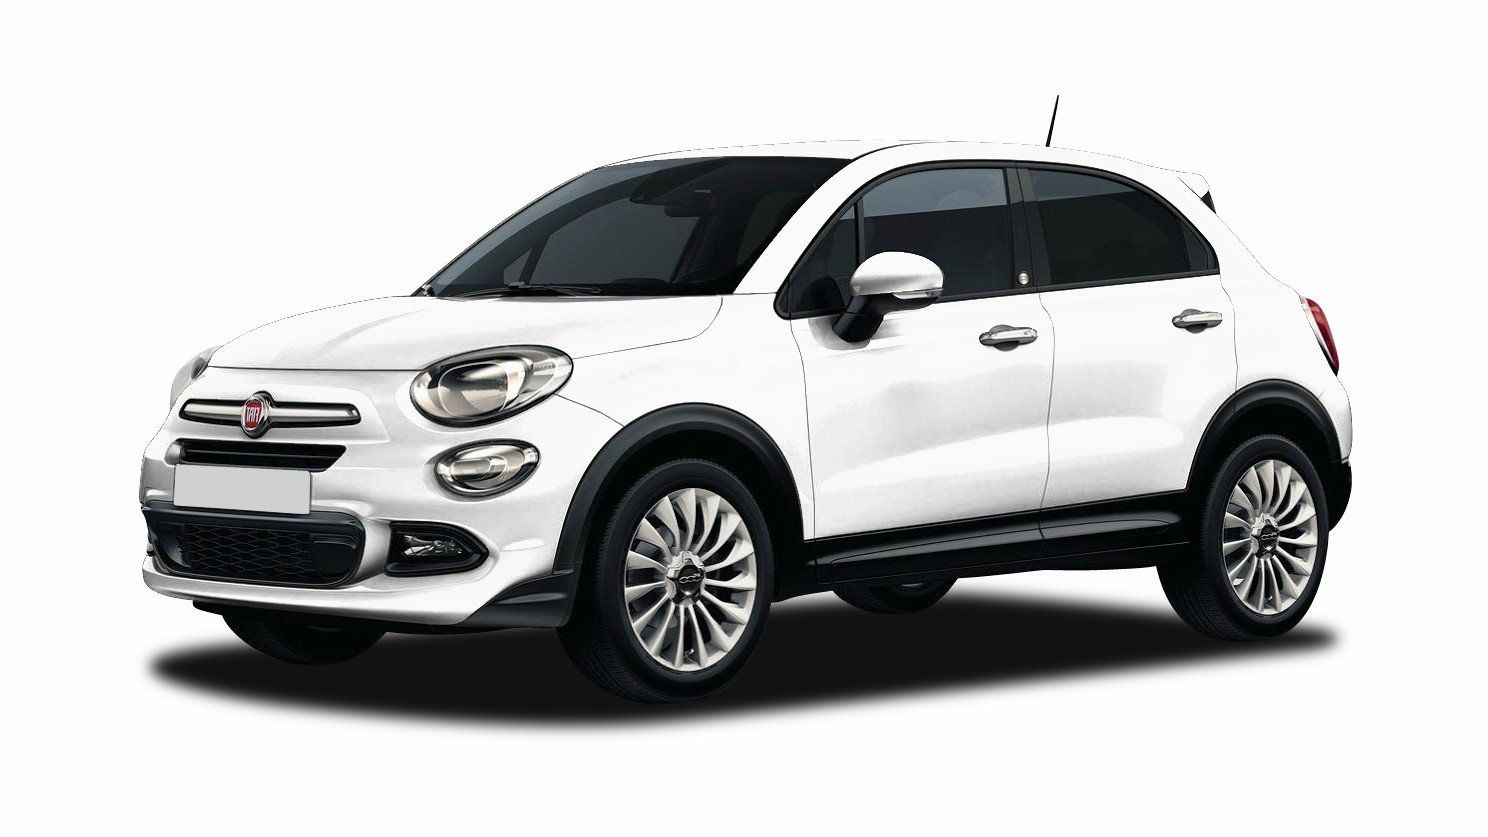 fiat 500x blanc gelato 296 popstar gps essence au meilleur prix avec aramisauto voiture. Black Bedroom Furniture Sets. Home Design Ideas